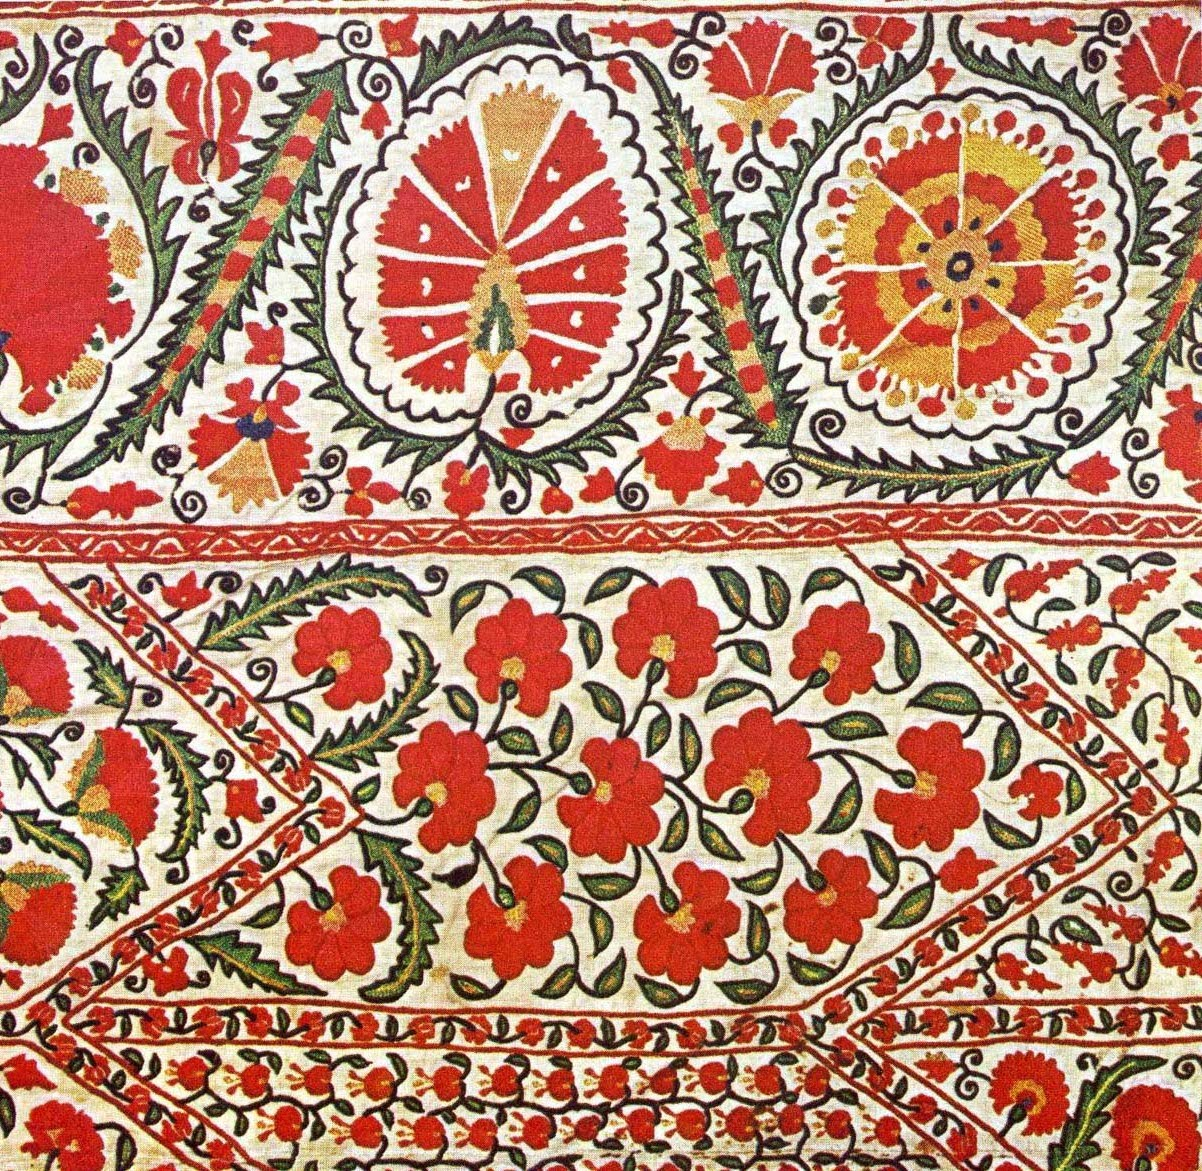 Uzbekistan Embroidery Patterns